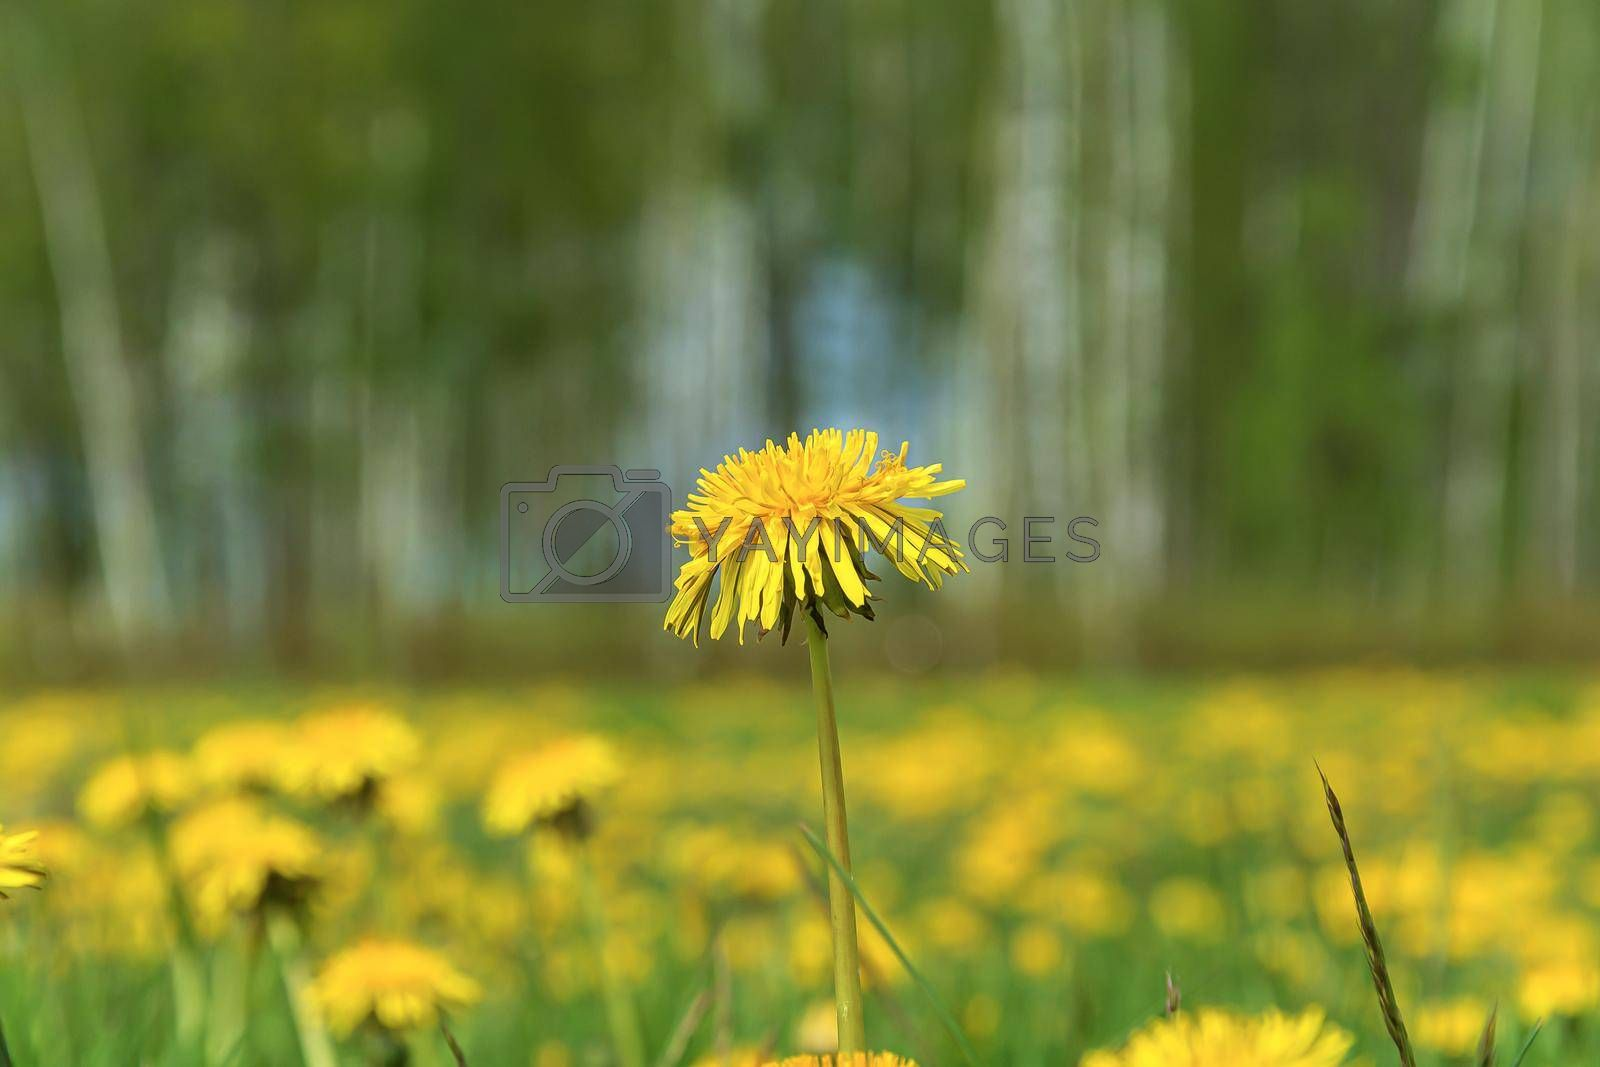 Yellow dandelion flower on a blurred background with bokeh elements. Stock photography.